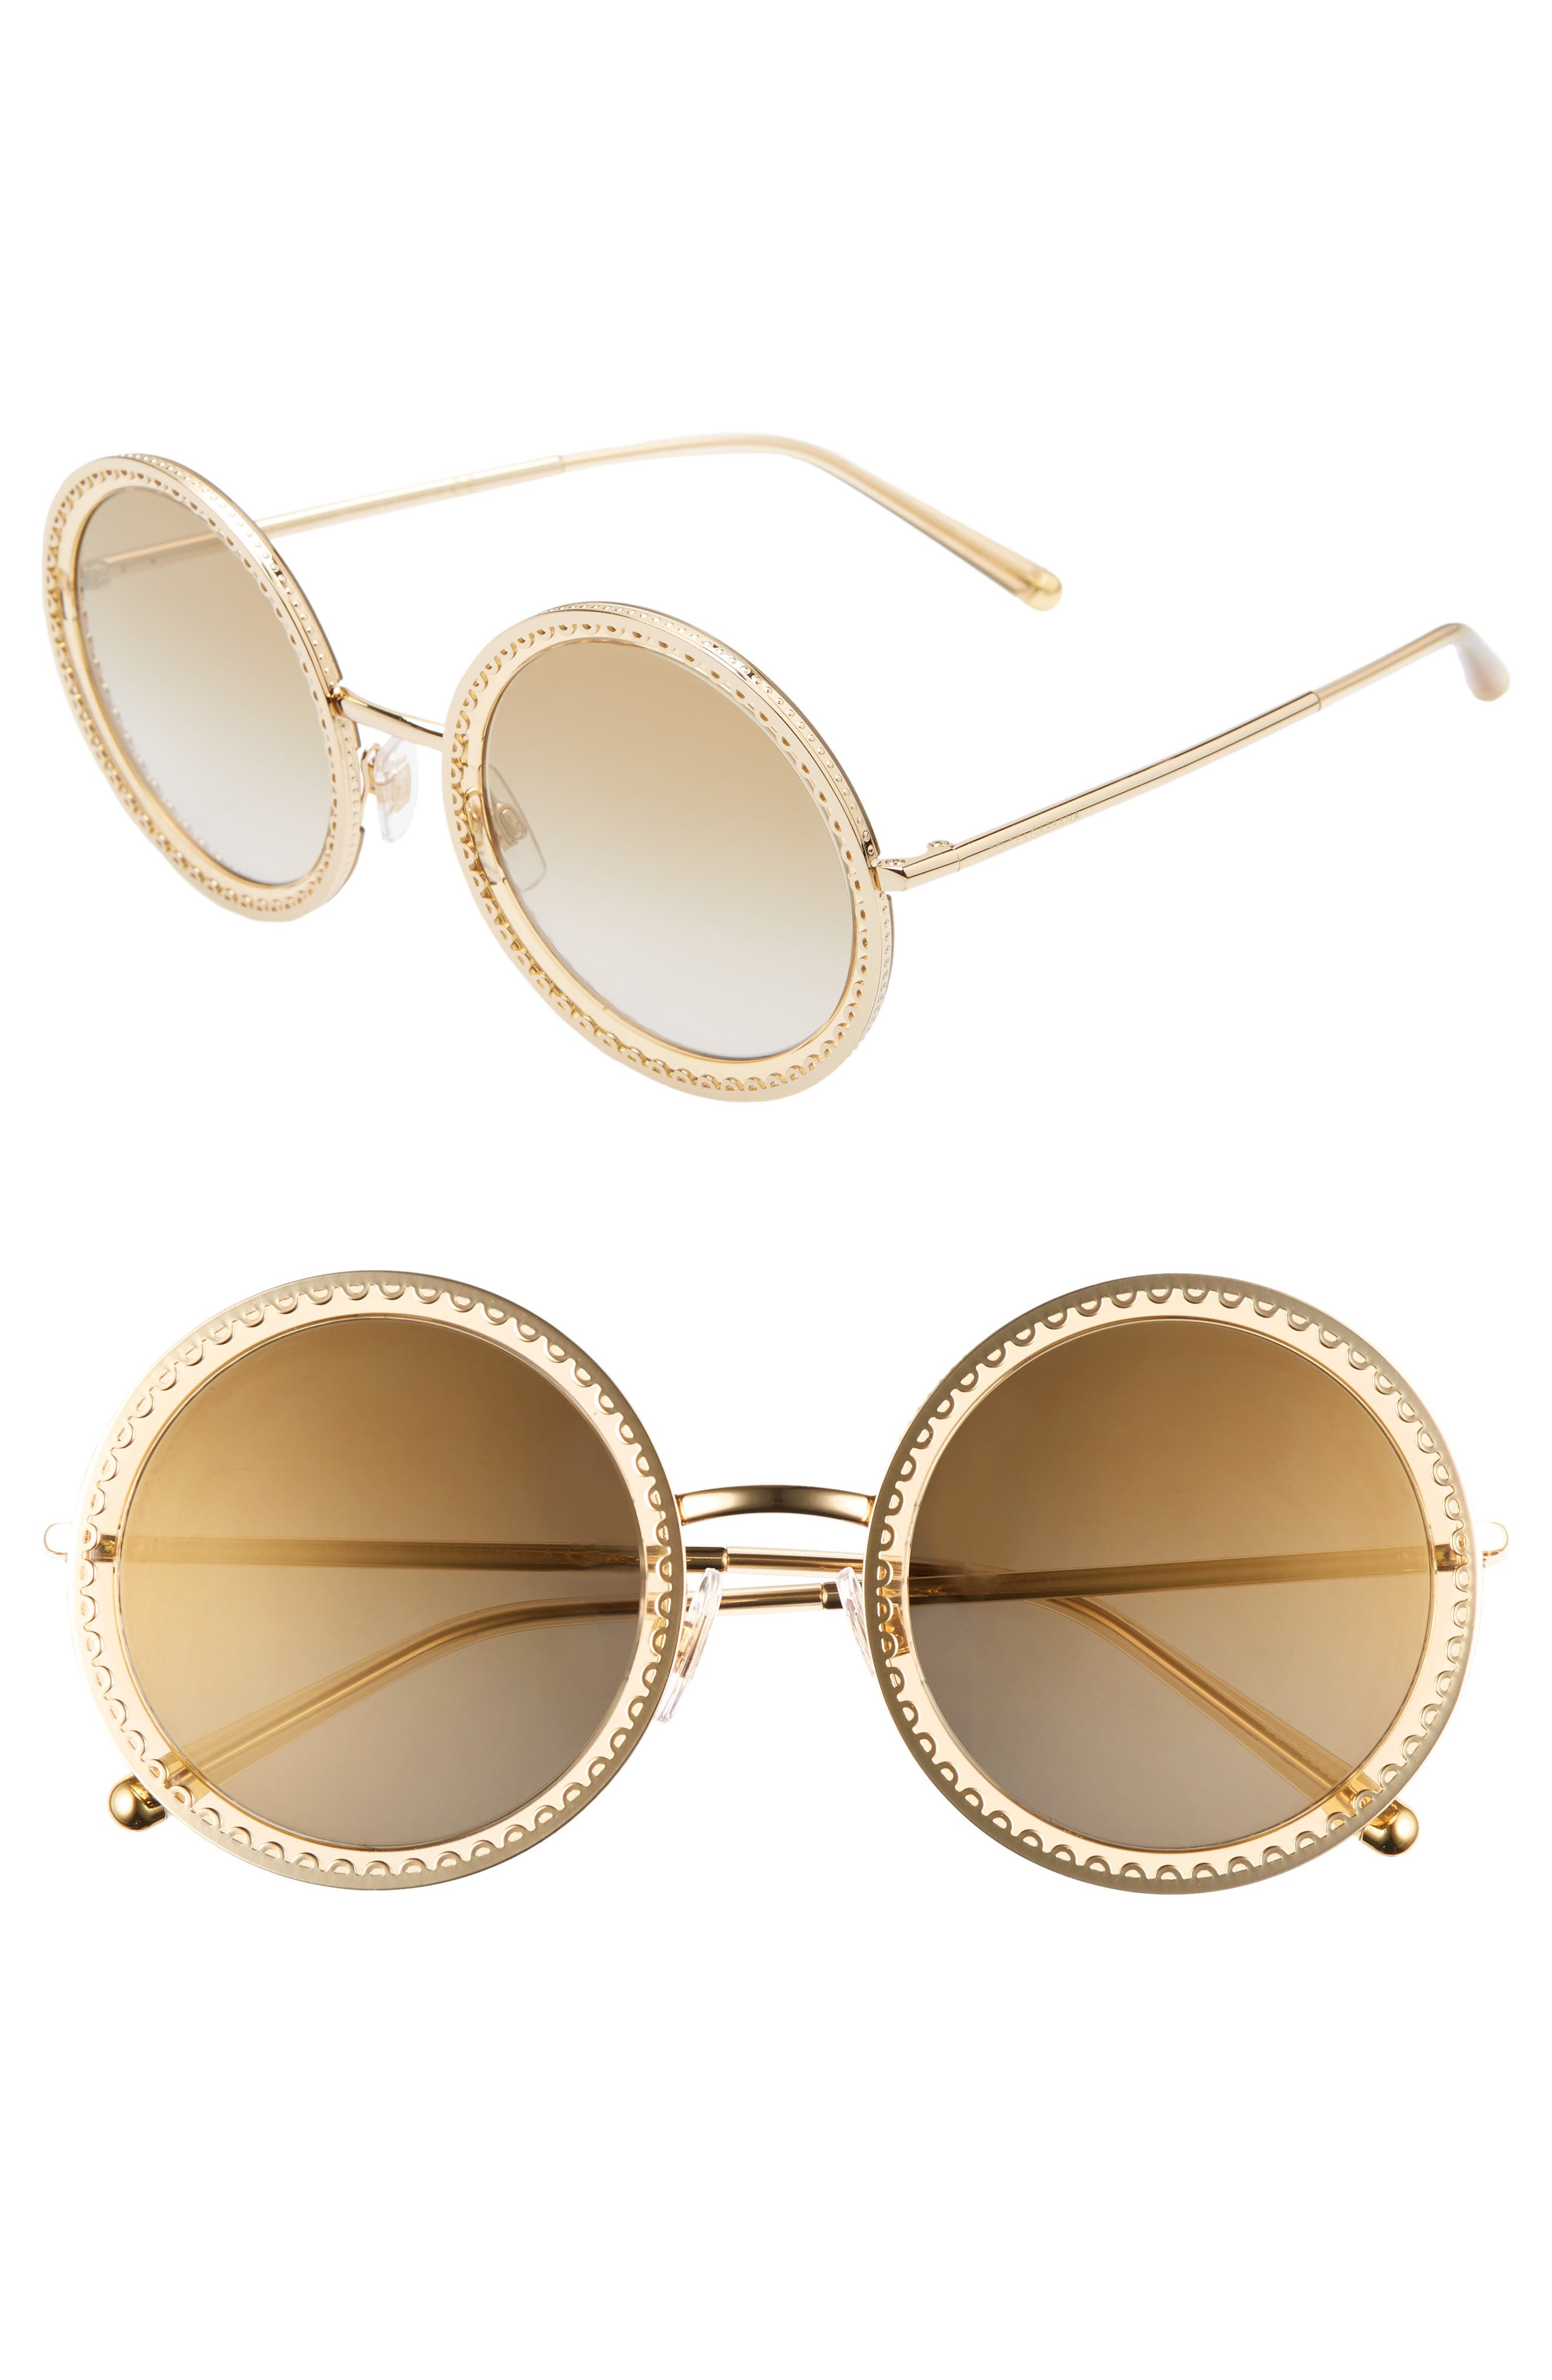 eb8a3ade6ce Dolce   gabbana Sacred Heart 5m Gradient Round Sunglasses - Gold Brown  Gradient Mirror